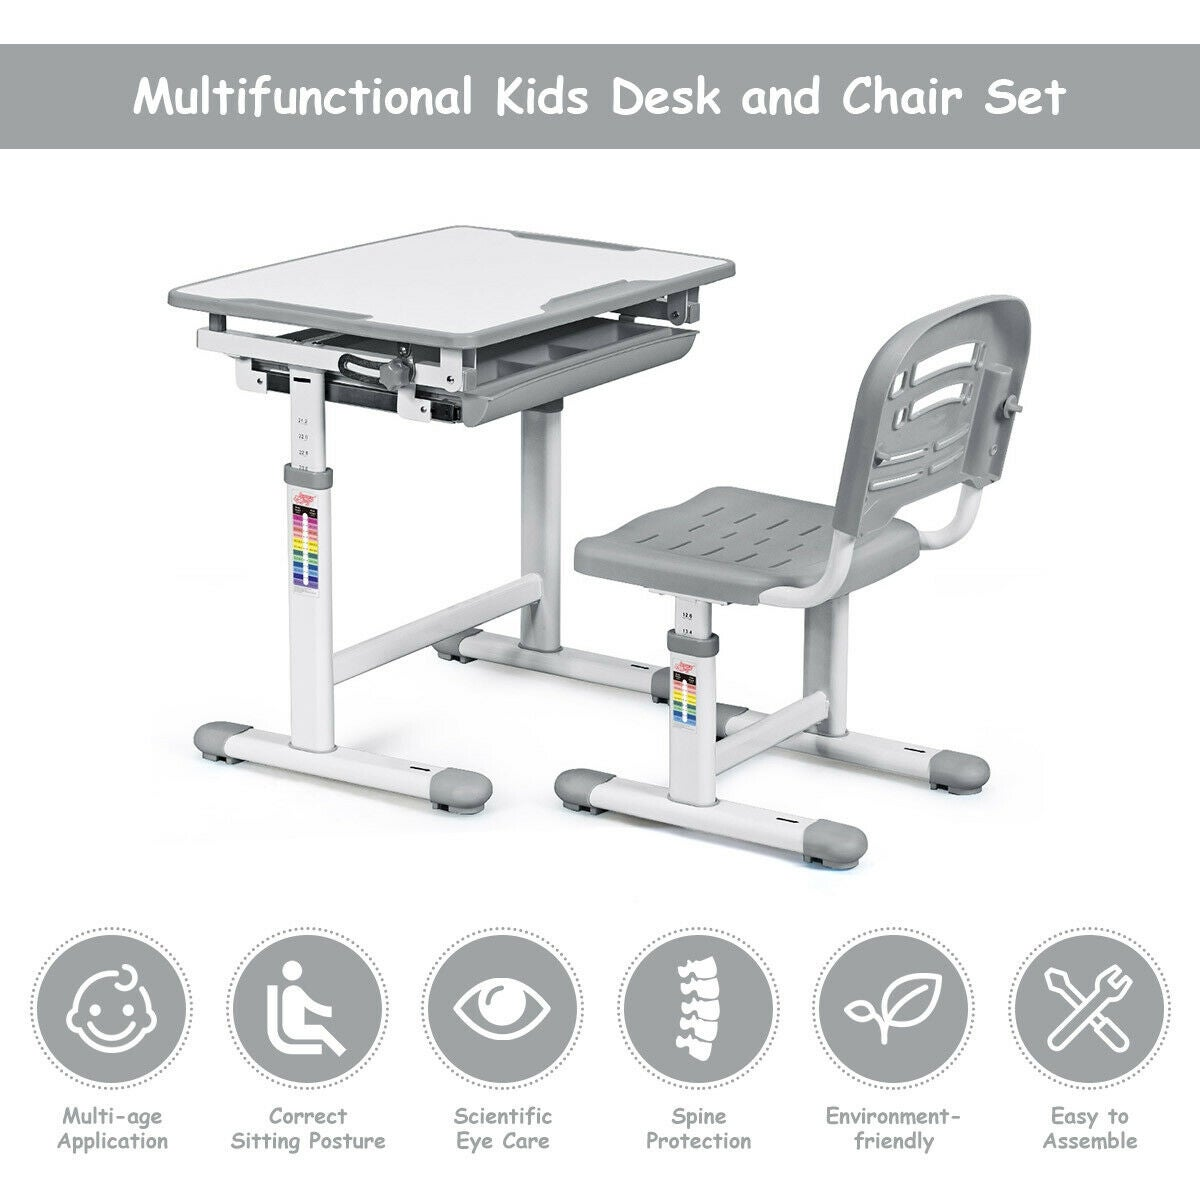 Groovy Gymax Height Adjustable Childrens Desk Chair Set Multifunctional Study Drawing Gray Onthecornerstone Fun Painted Chair Ideas Images Onthecornerstoneorg